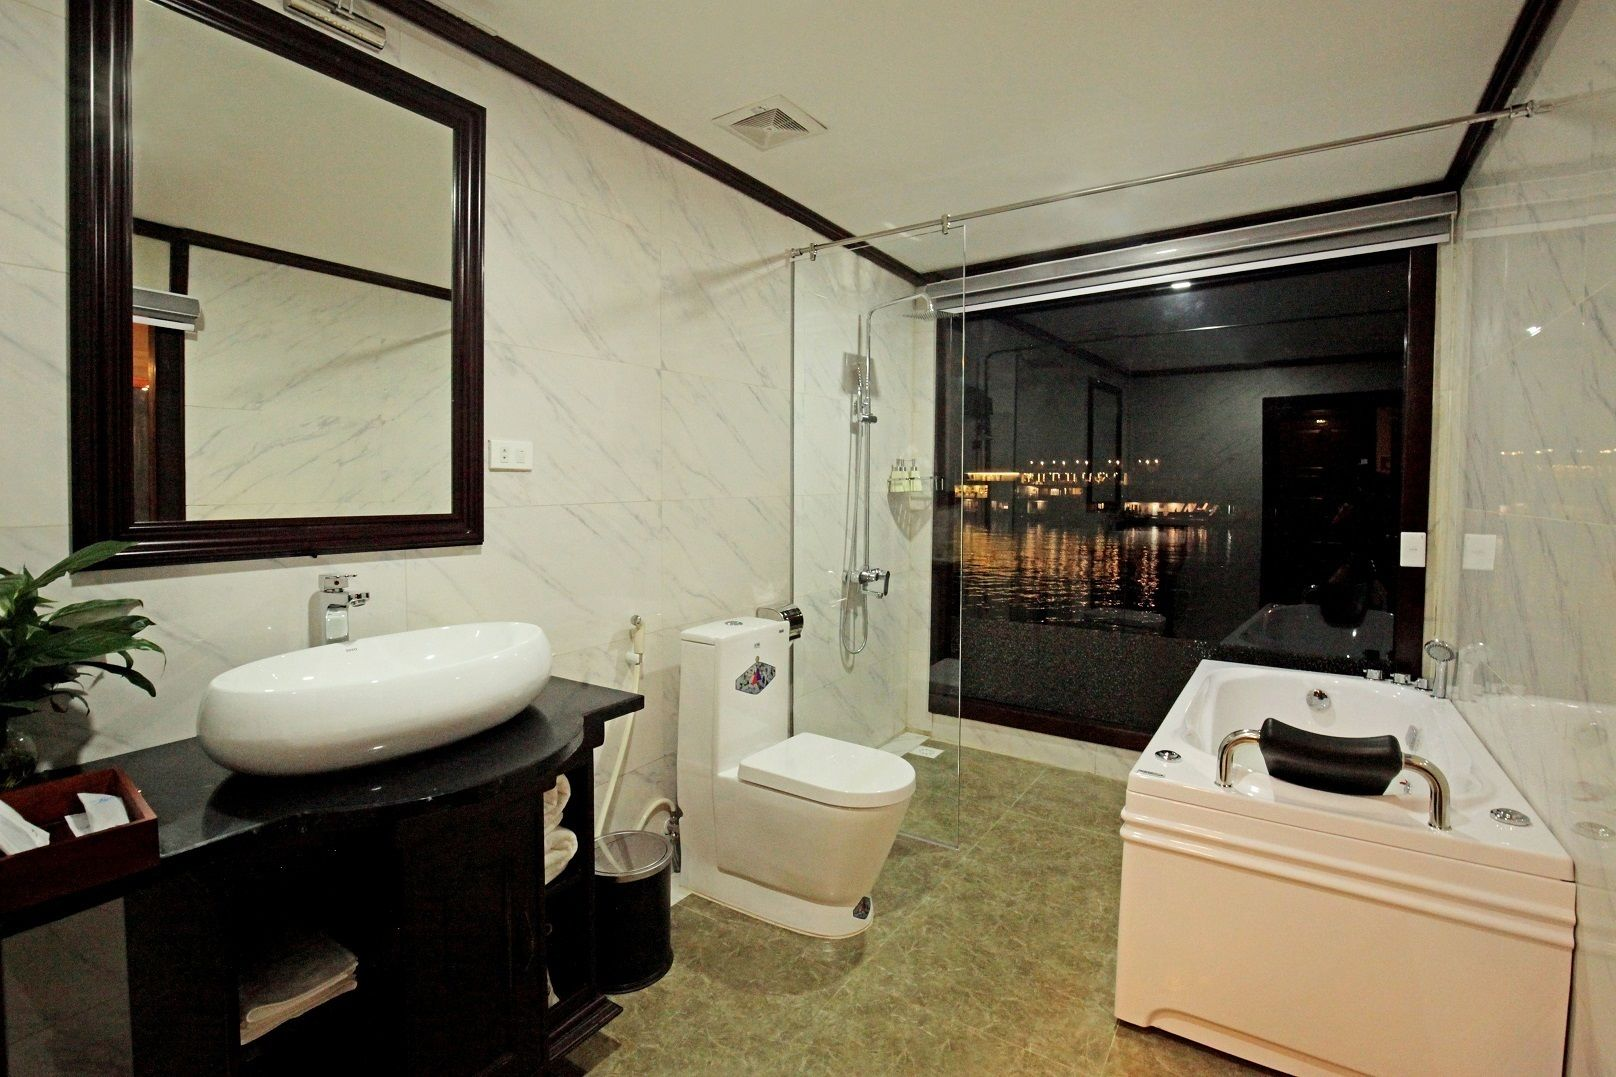 Bathroom on a cruise ship in Vietnam